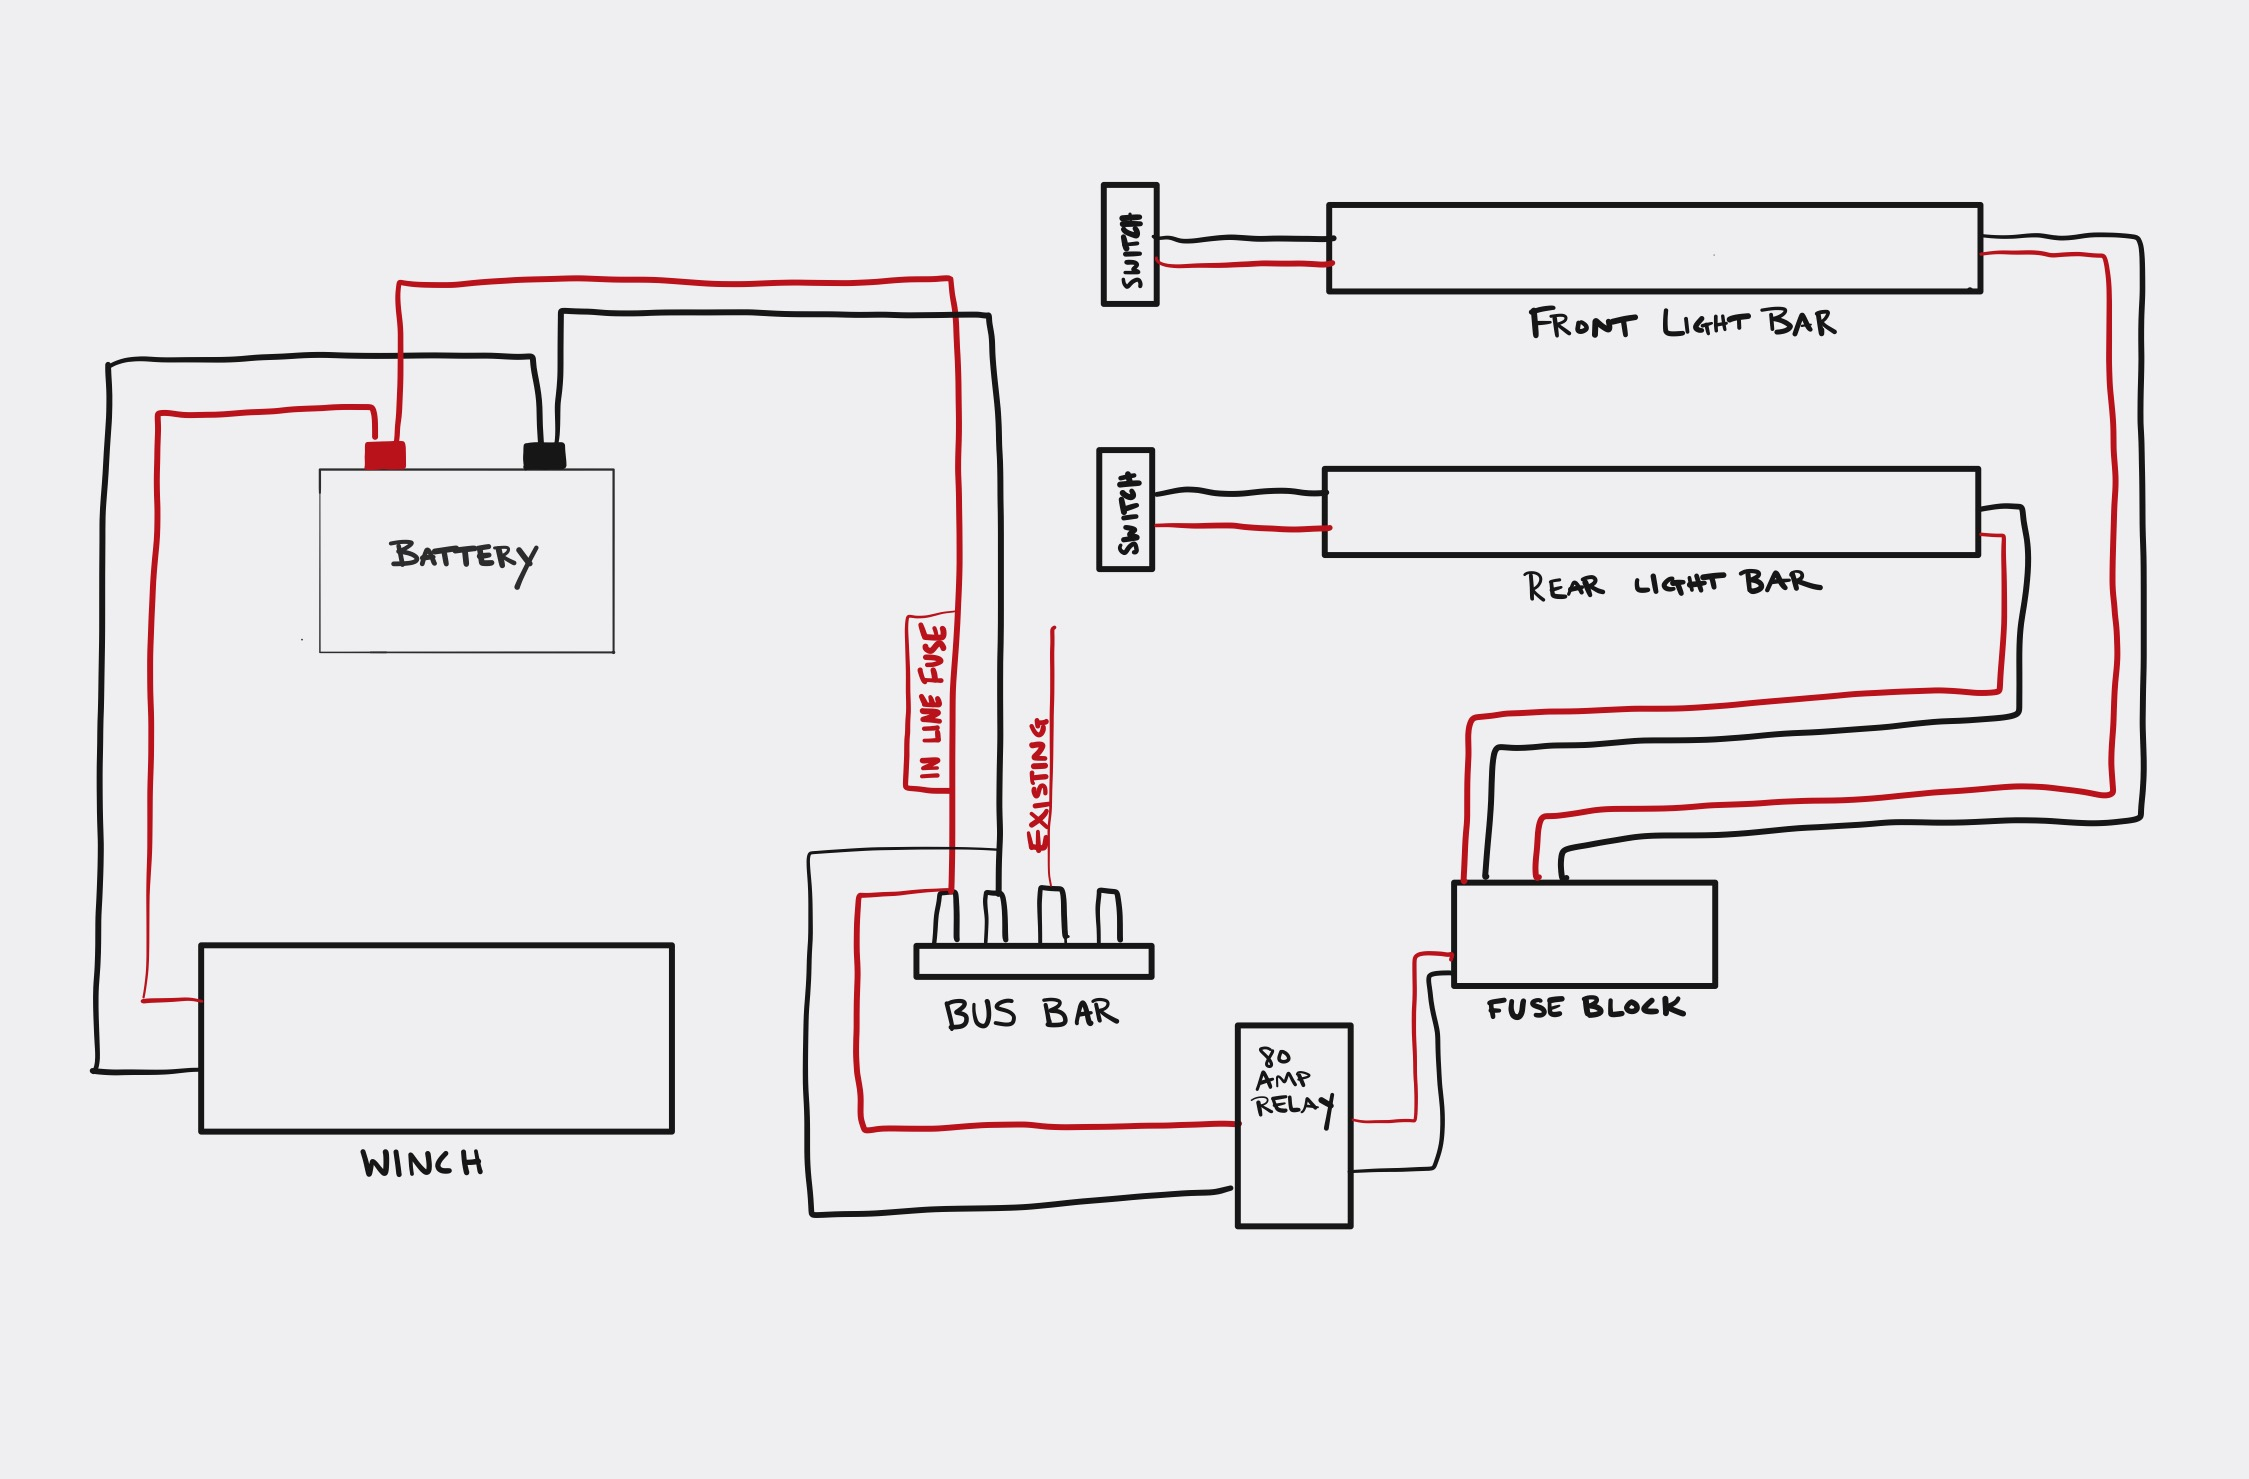 marine bus bar wiring diagram marine image wiring bus bar wiring system solidfonts on marine bus bar wiring diagram